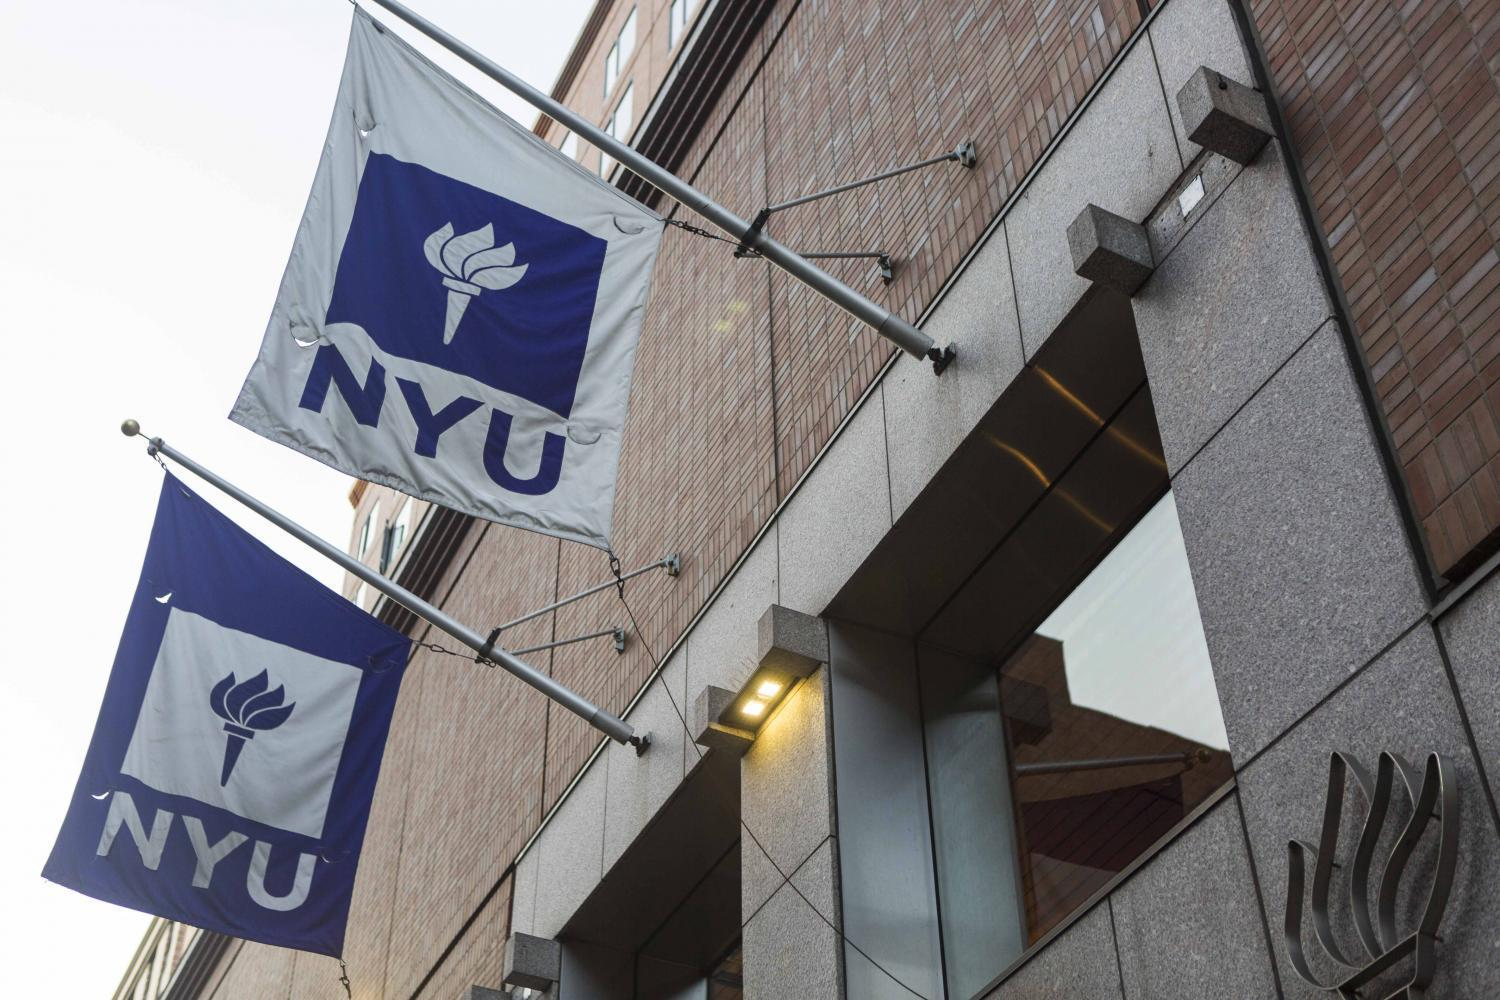 The+union+that+represents+a+number+of+NYU+staff+will+be+negotiating+contracts+with+the+university+on+Sept.+18.+%0A